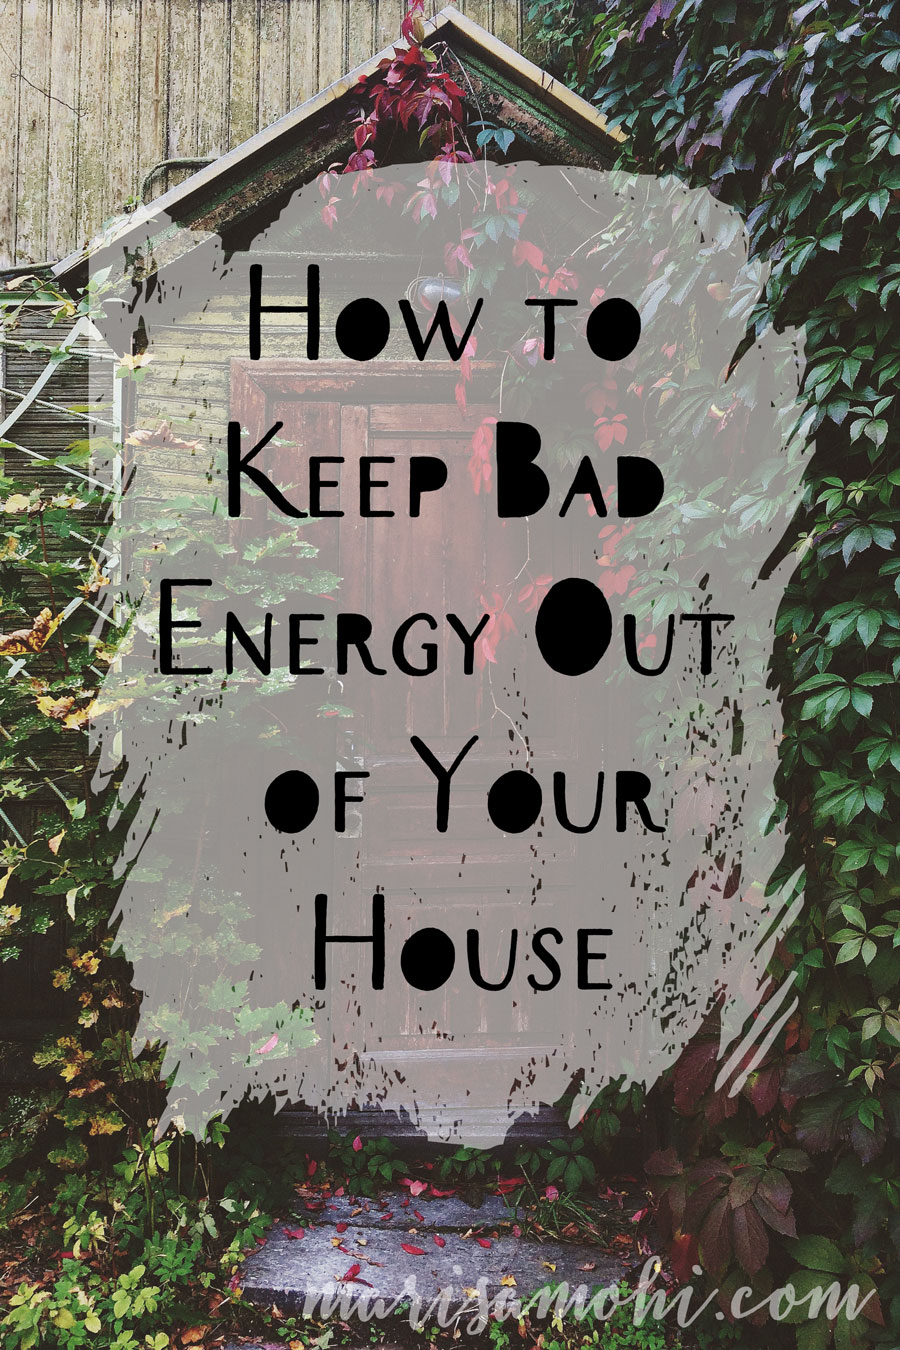 I've got a really simple tip for keeping bad energy out of your house!